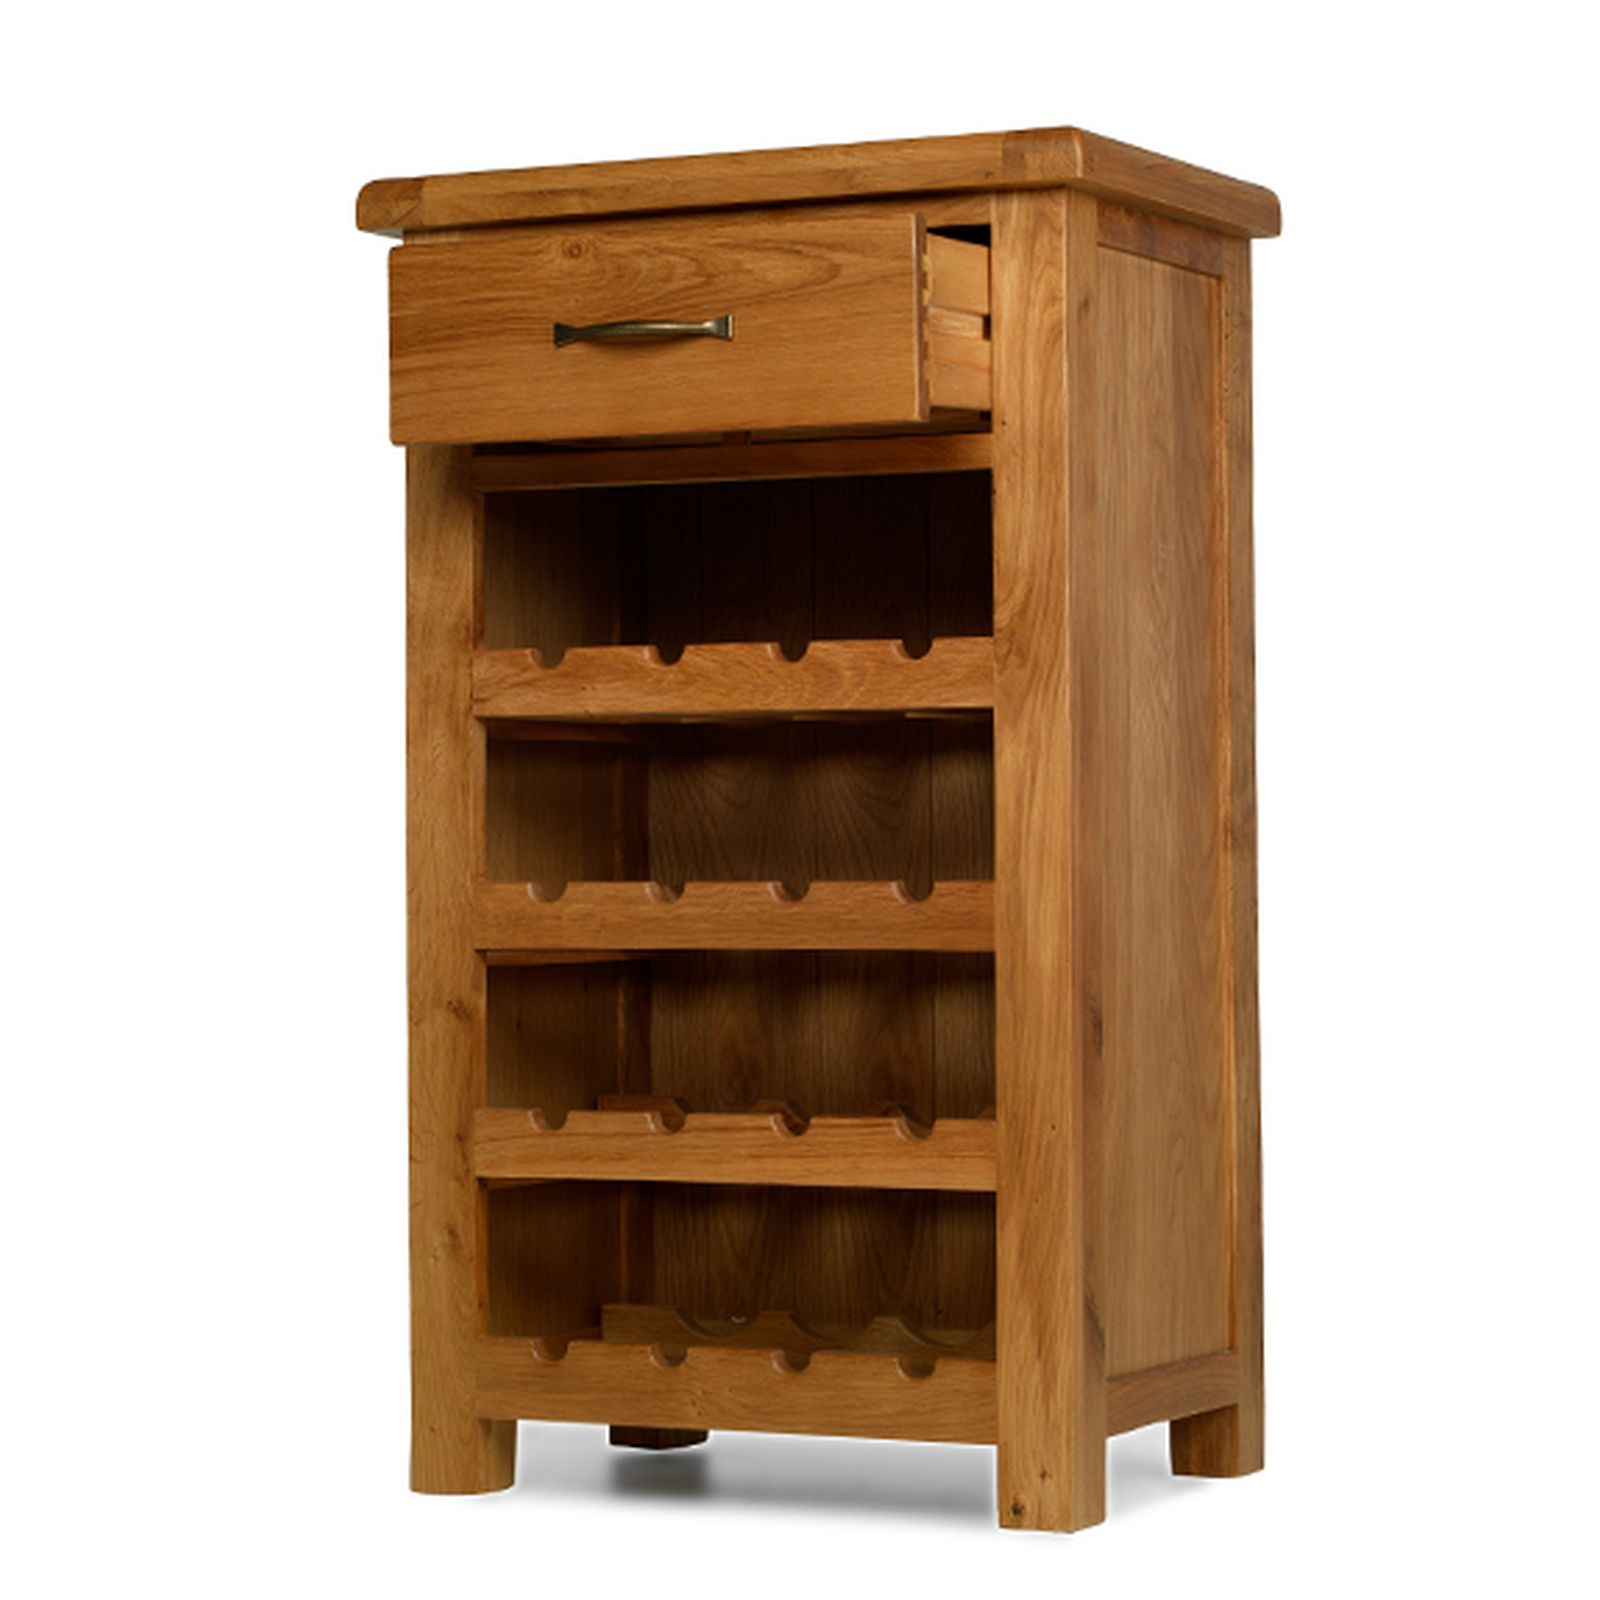 Small Wine Storage Cabinets Rushden Solid Oak Furniture Small Wine Bottle Cabinet Rack